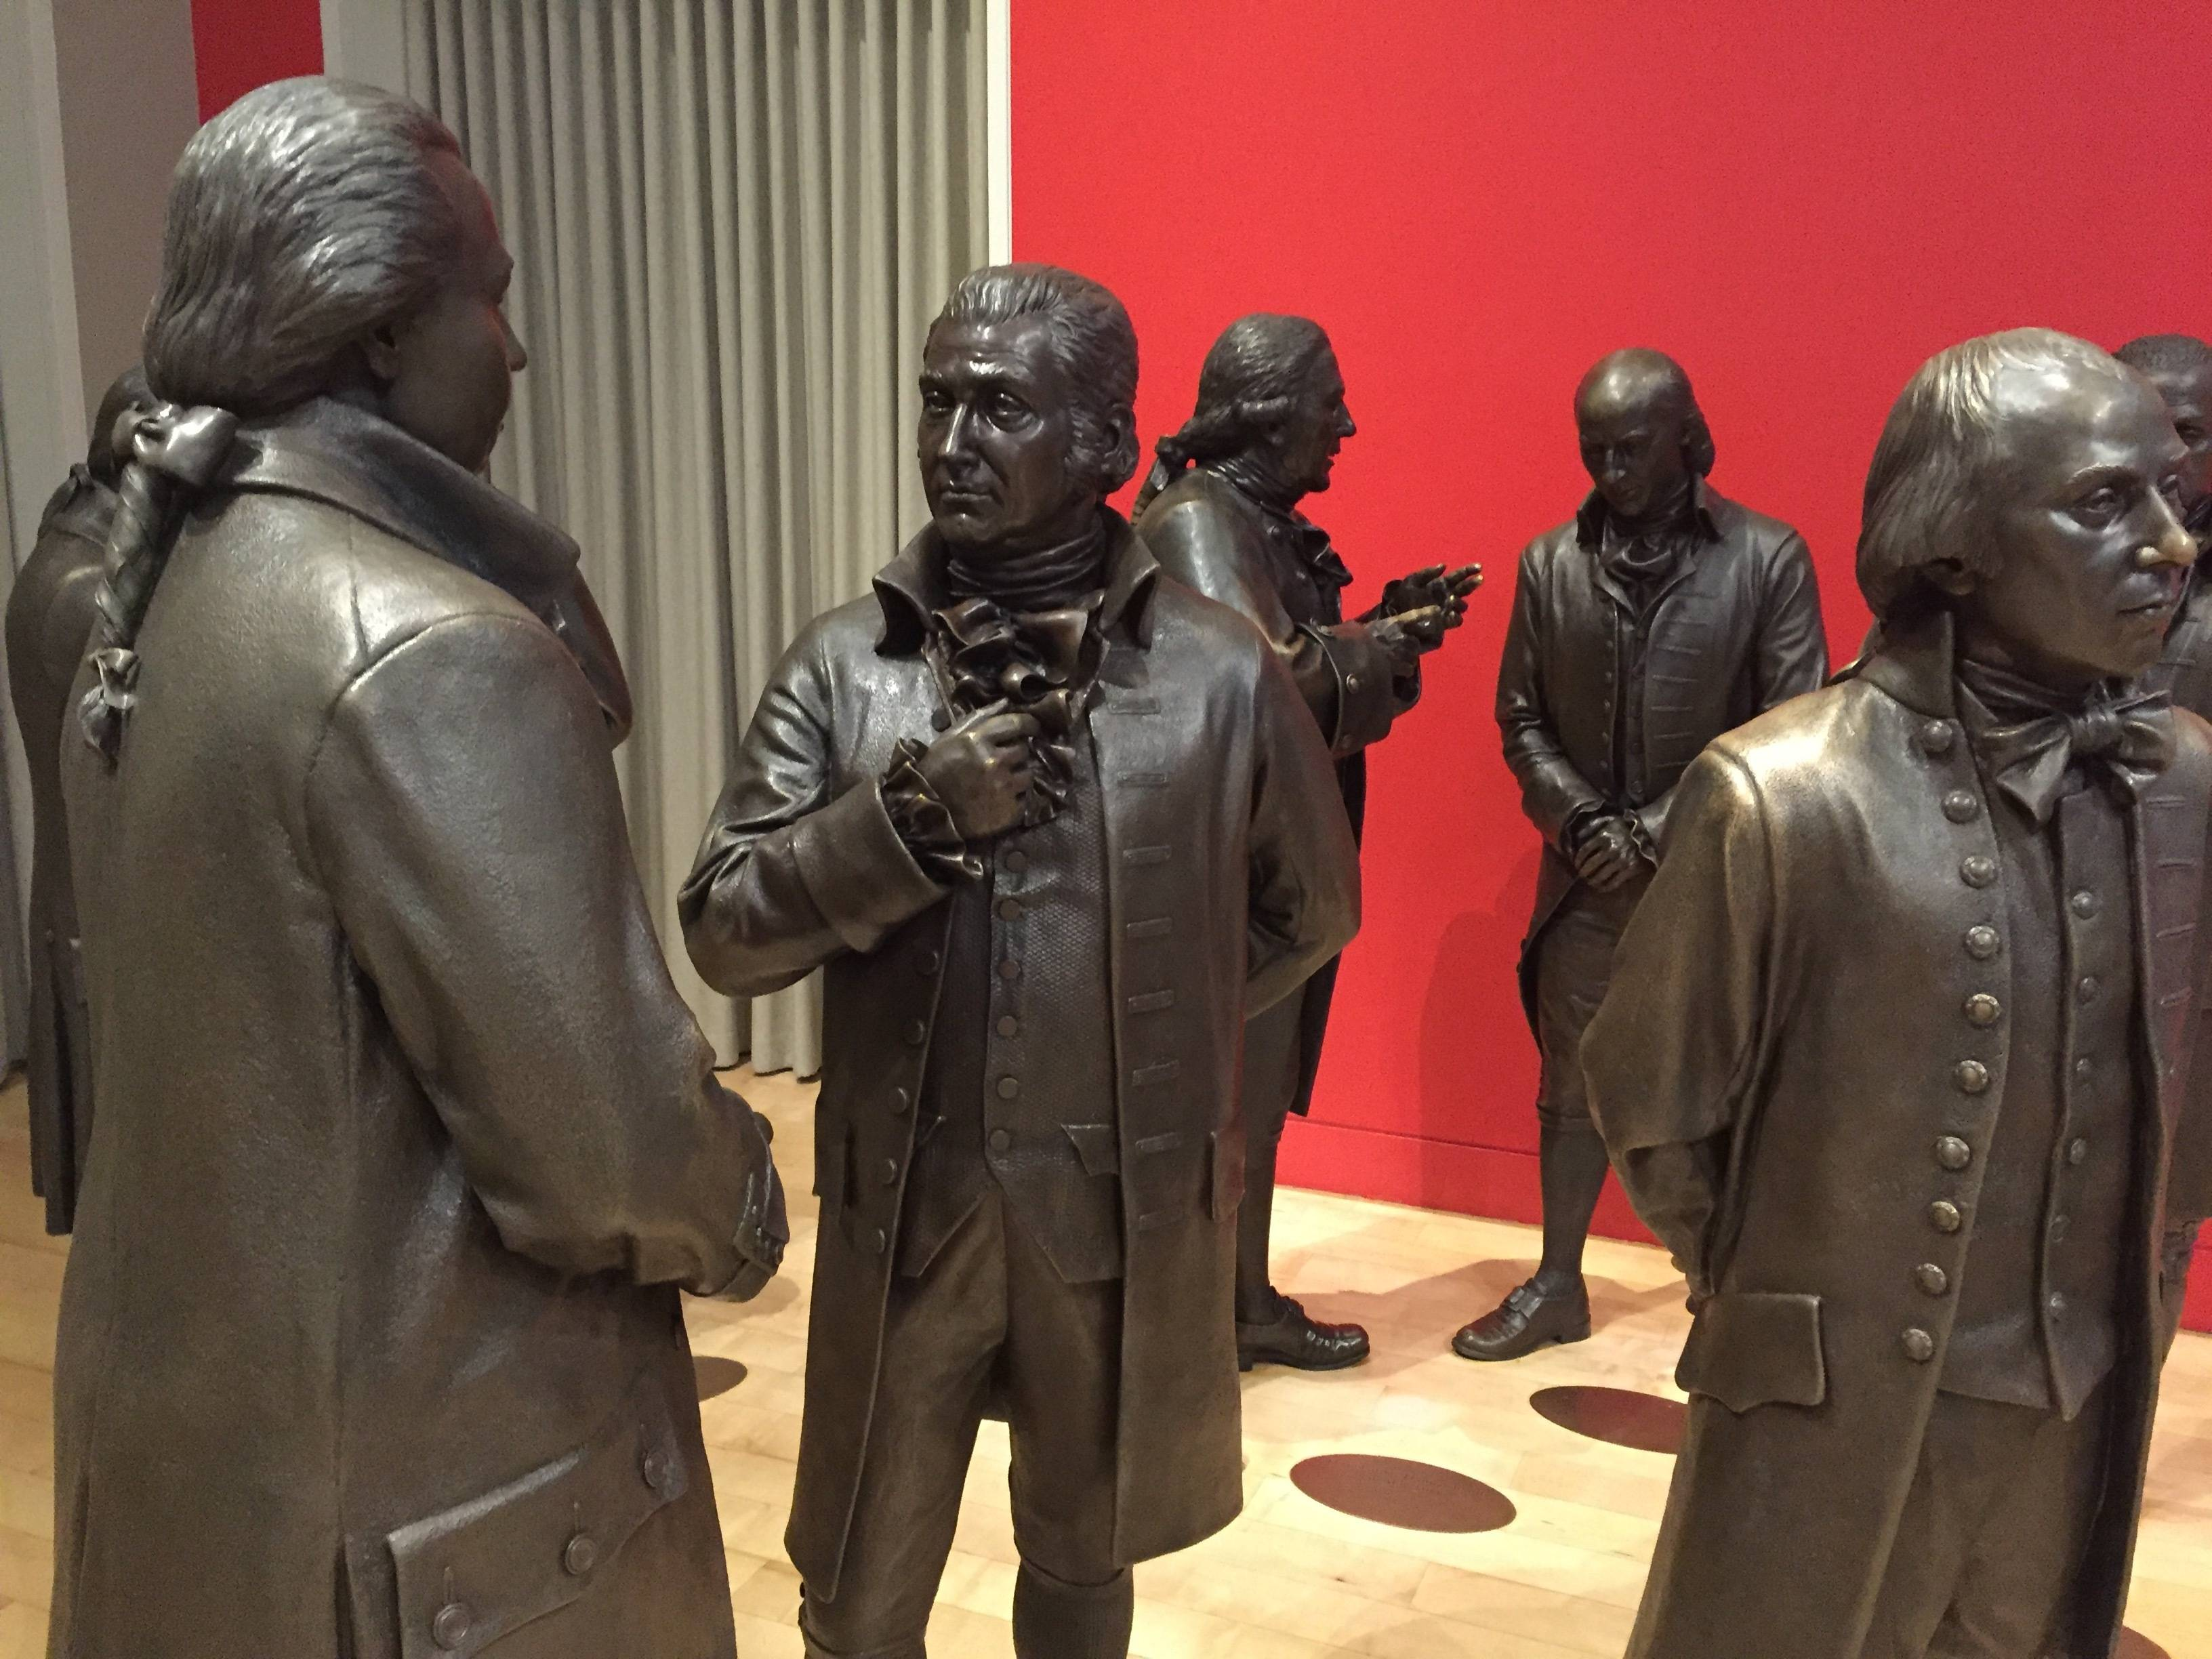 See life-size bronze sculptures of the signers of the U.S. Constitution in the Signers' Hall at the National Constitution Center. The room is designed to give visitors a sense of what it was like for the Founding Fathers to huddle in a room debating and writing the famous document.